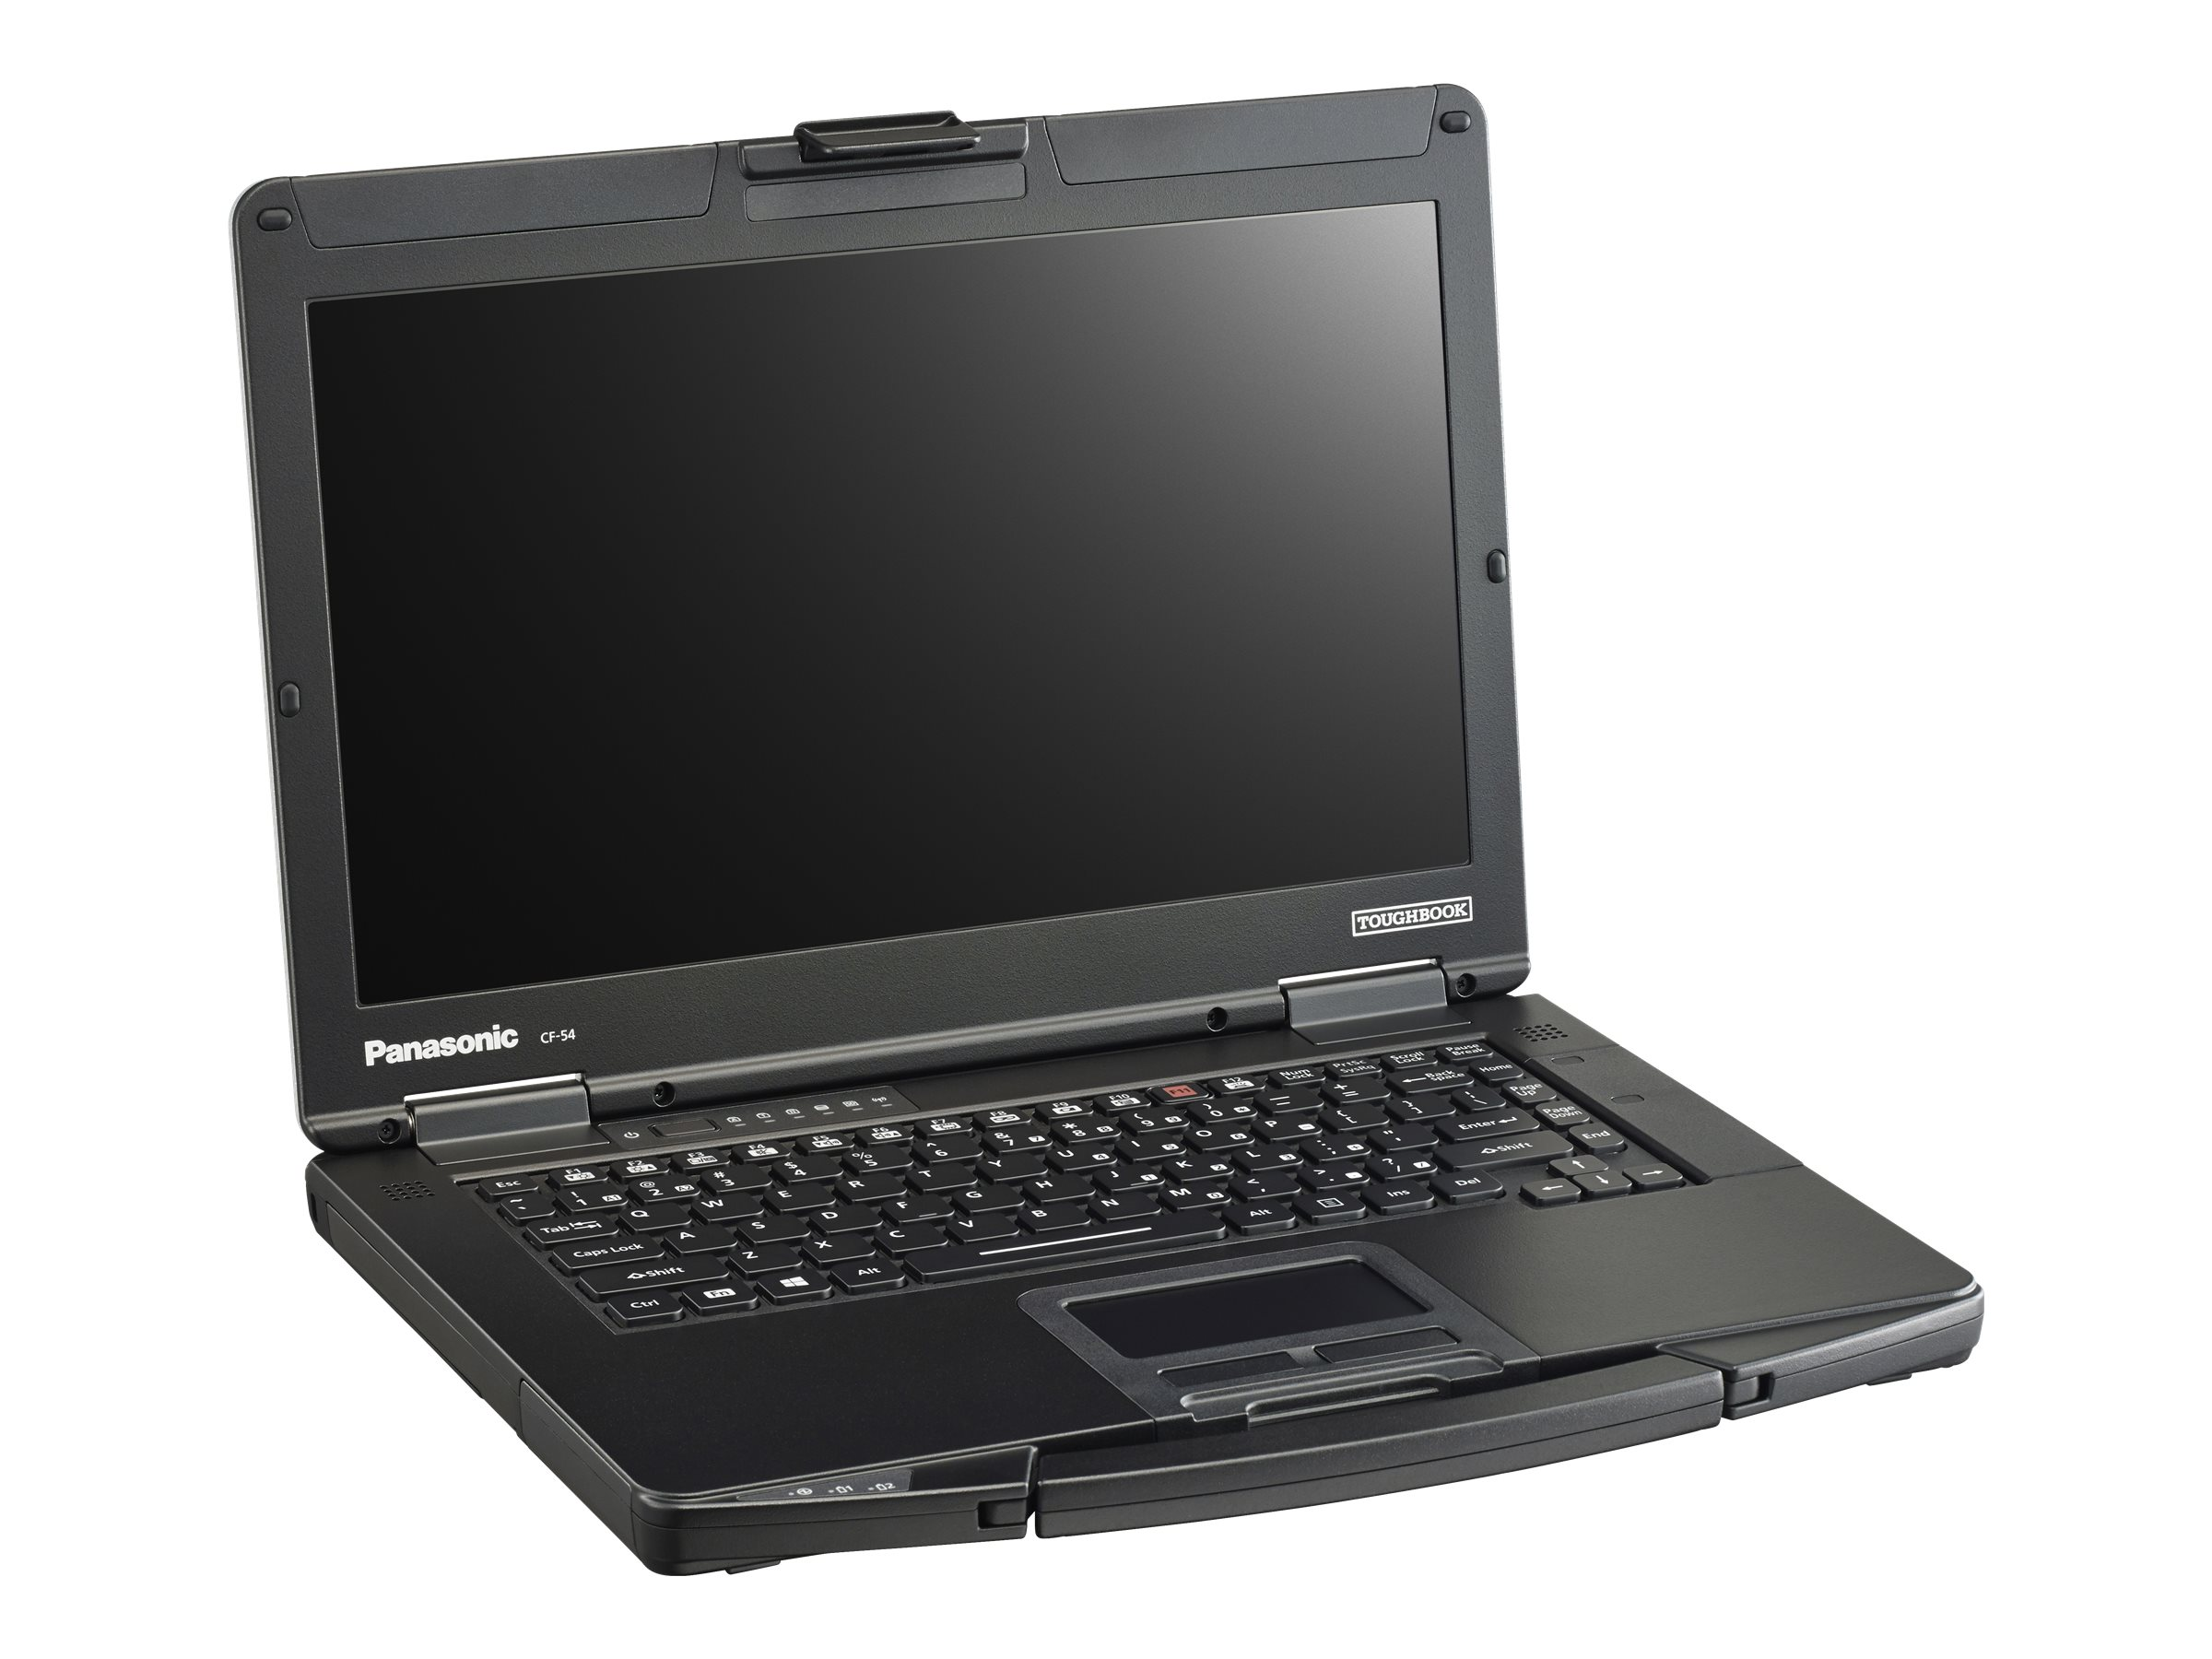 Panasonic Toughbook 54 2.4GHz Core i5 14in display, CF-54F9885VM